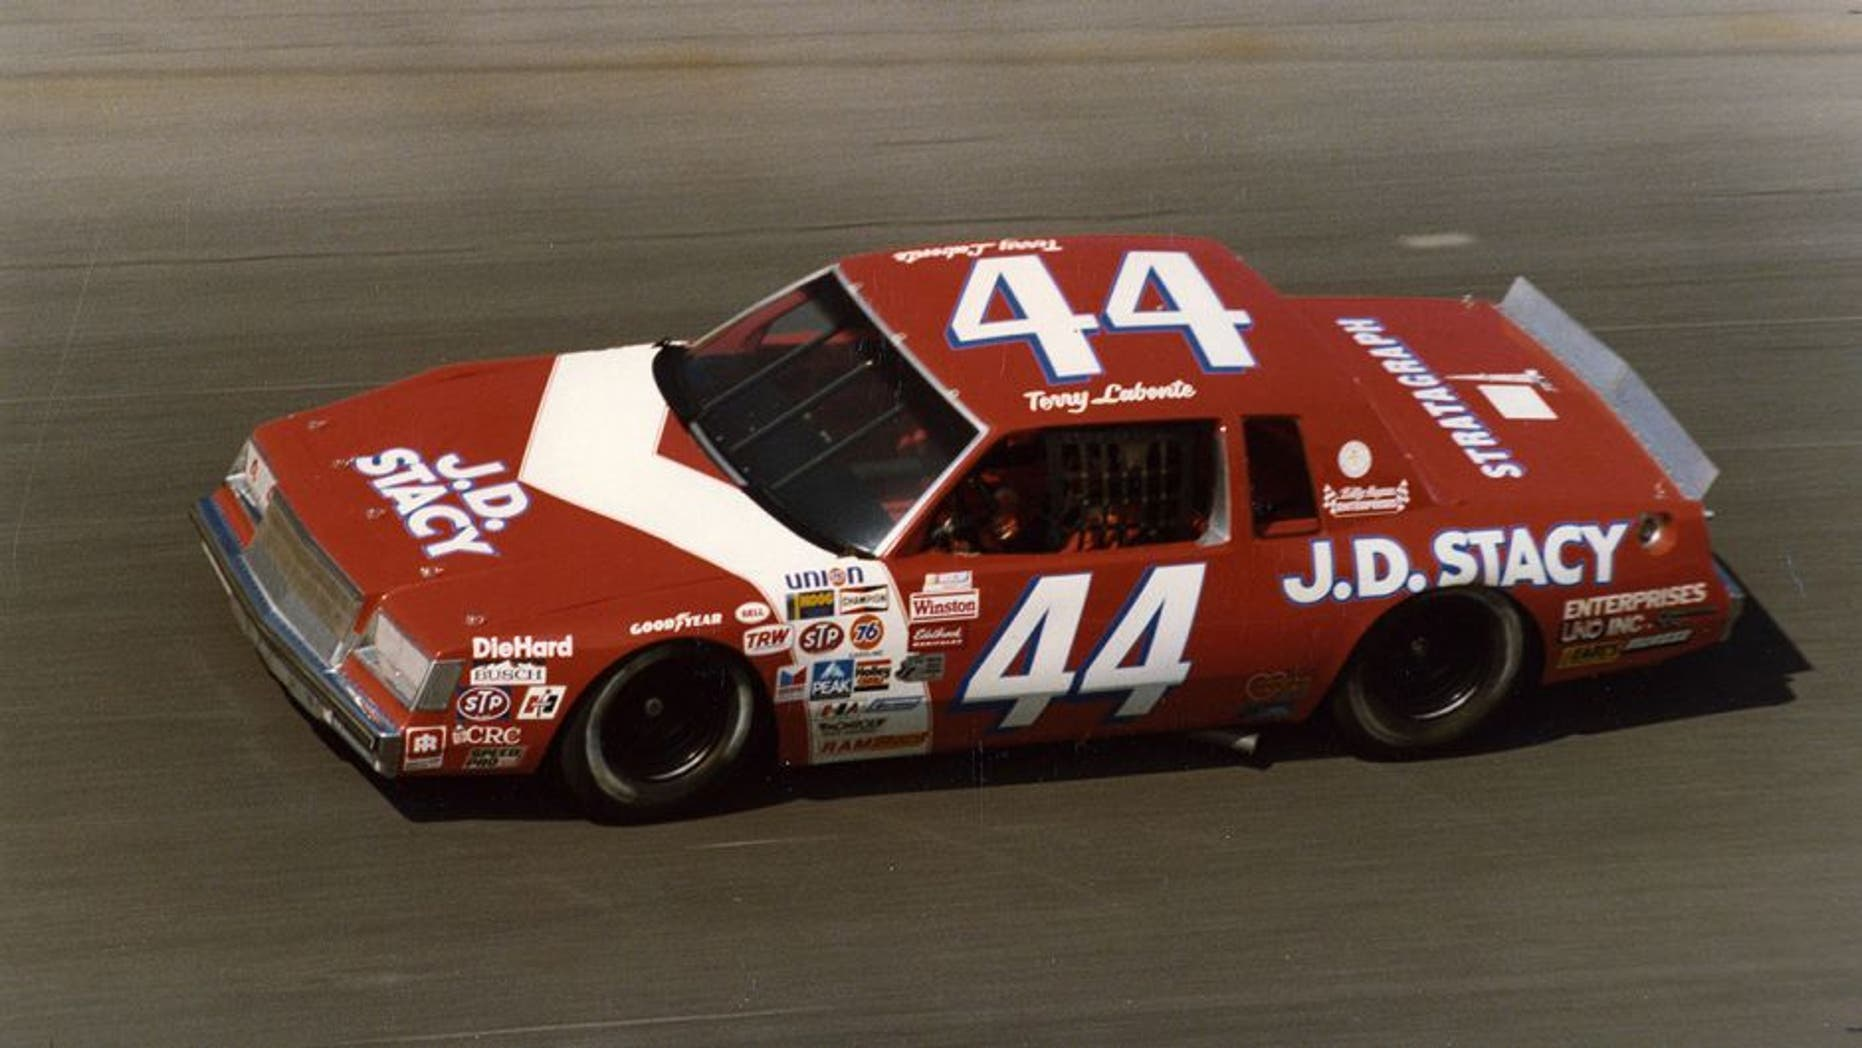 1982: Terry Labonte wheeled the Billy Hagan Buick with sponsorship from J.D. Stacy. (Photo by ISC Archives via Getty Images)